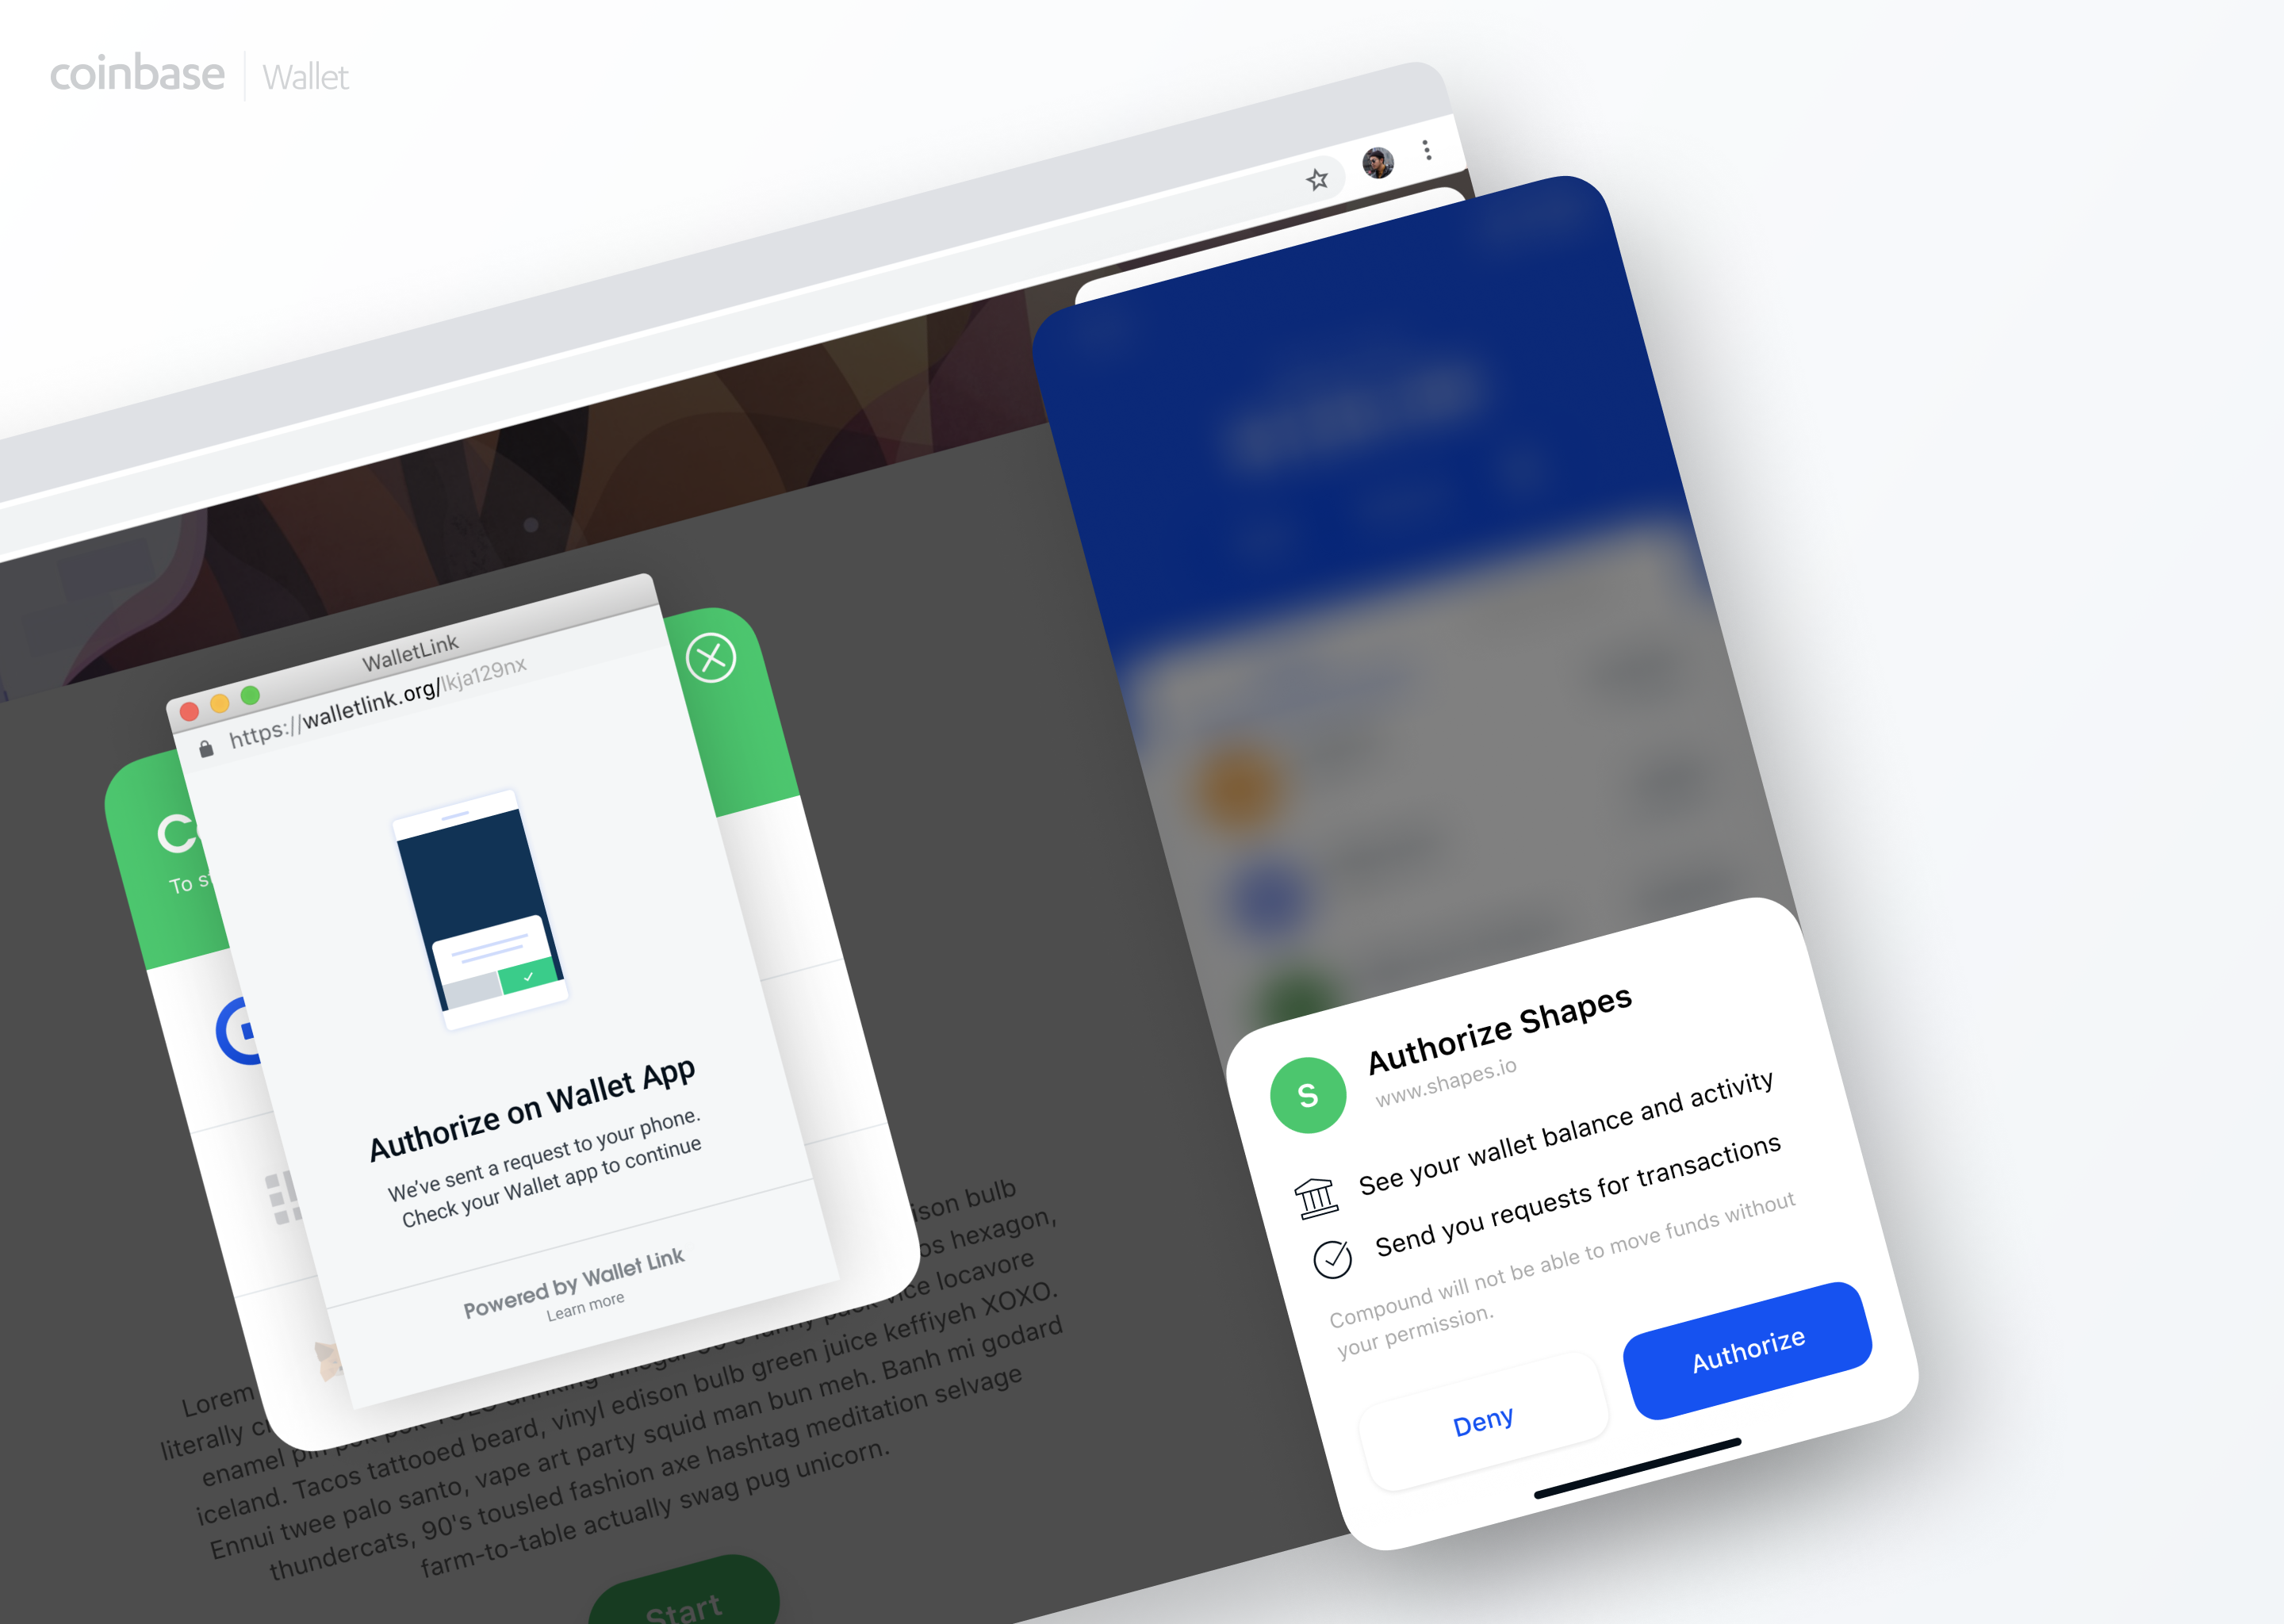 Coinbase brings blockchain dapps to desktop browsers with WalletLink